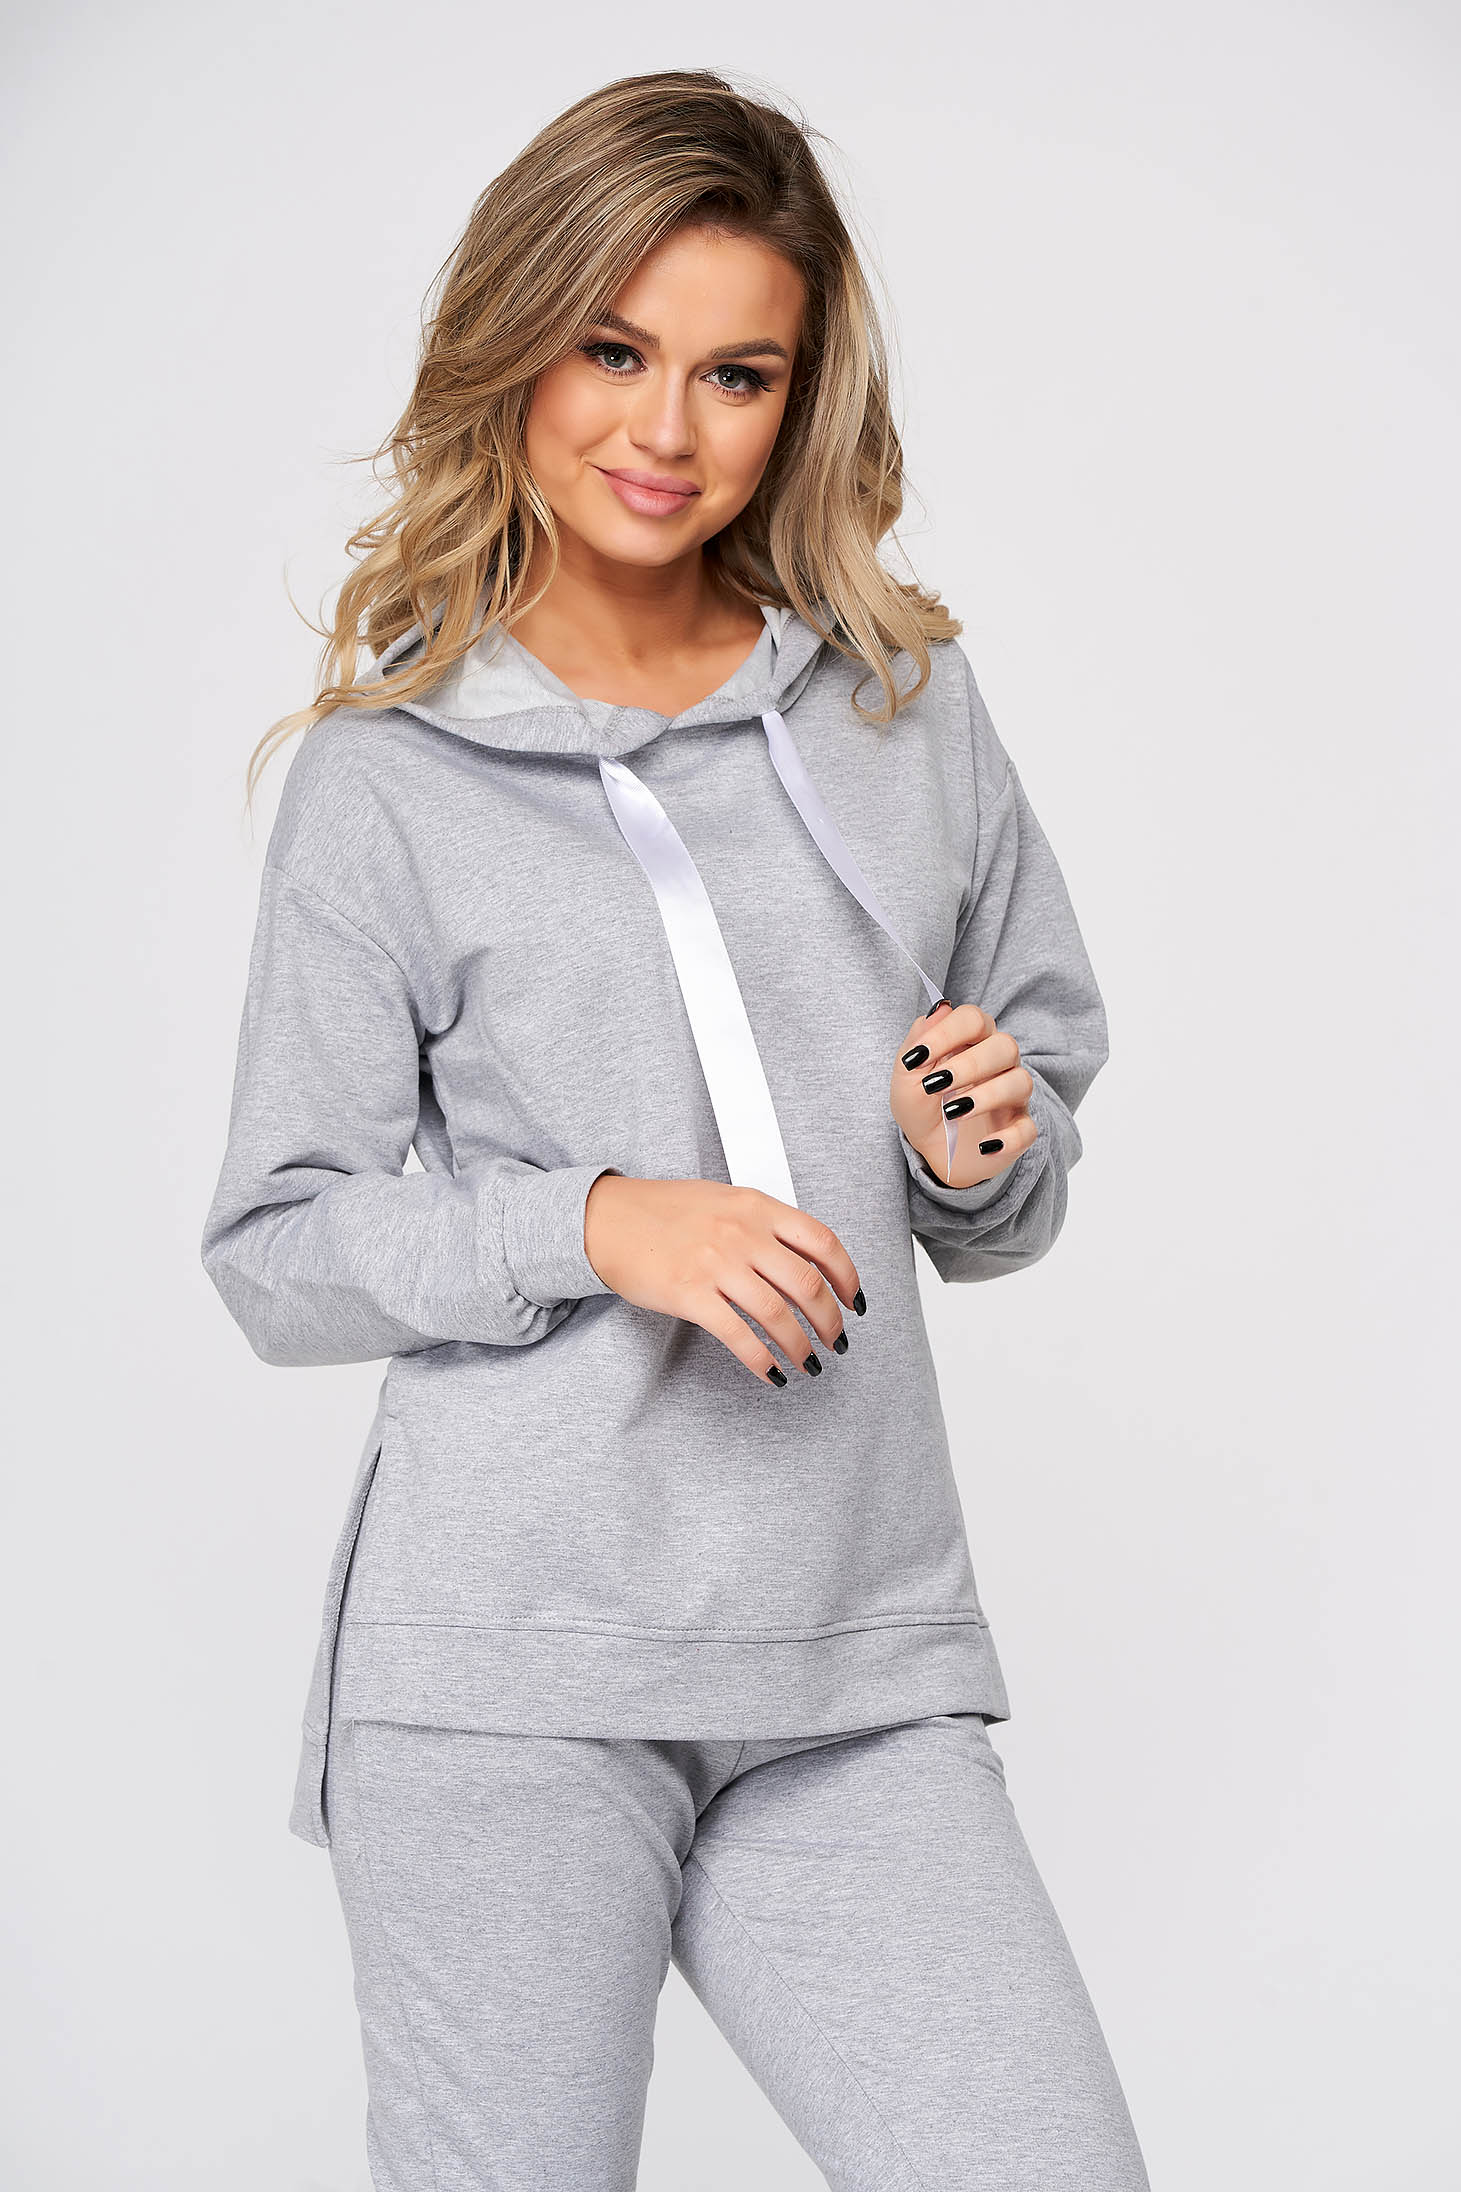 With trousers from two pieces cotton grey sport 2 pieces with easy cut